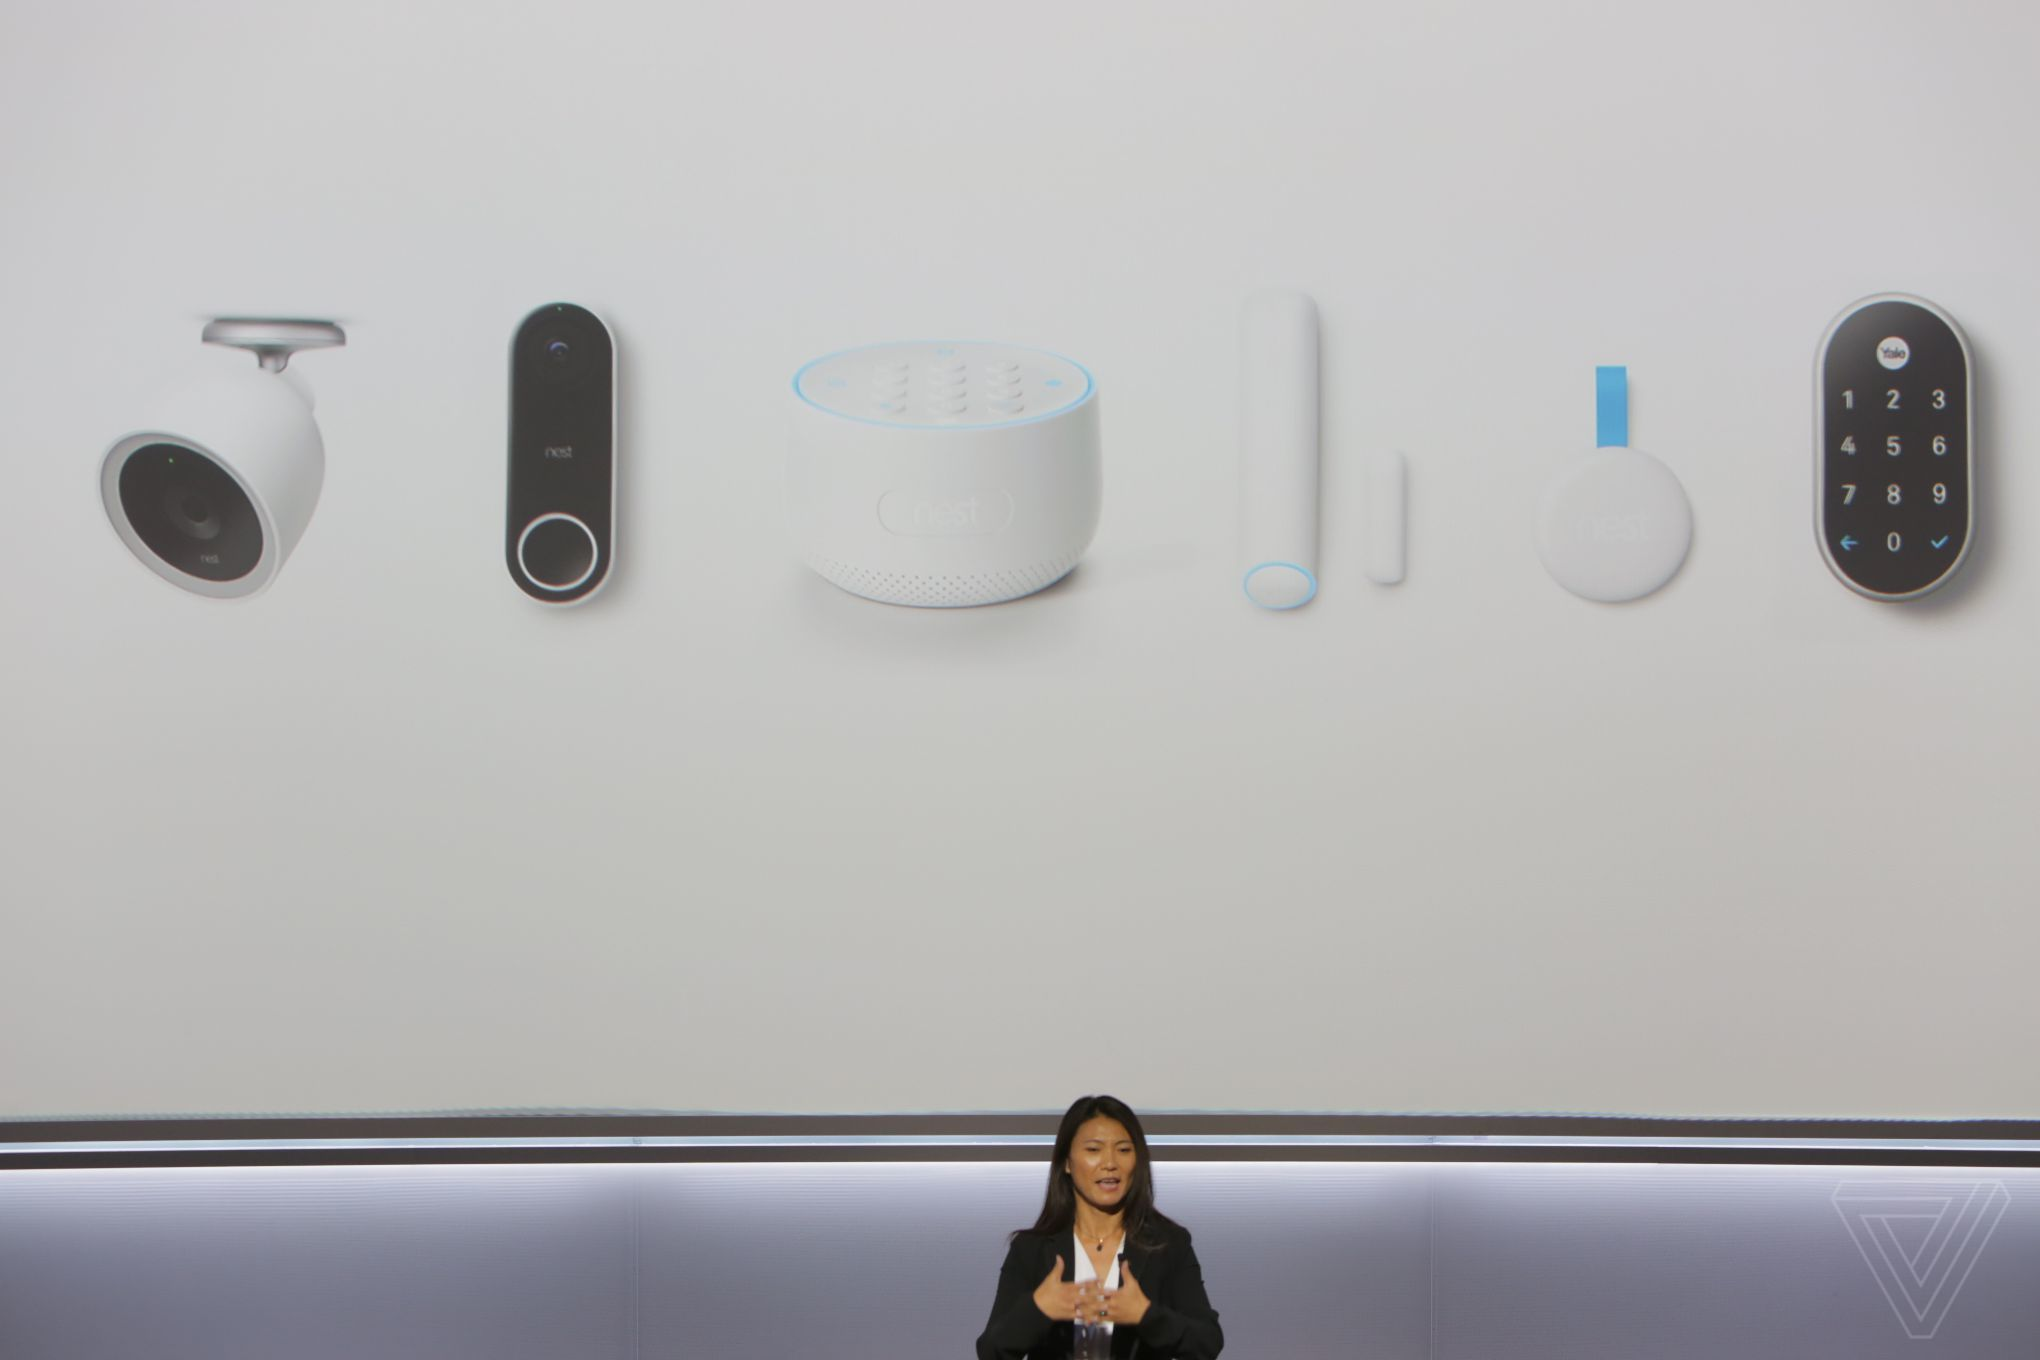 $49 Google Home Mini announced to compete with Amazon\'s Echo Dot ...